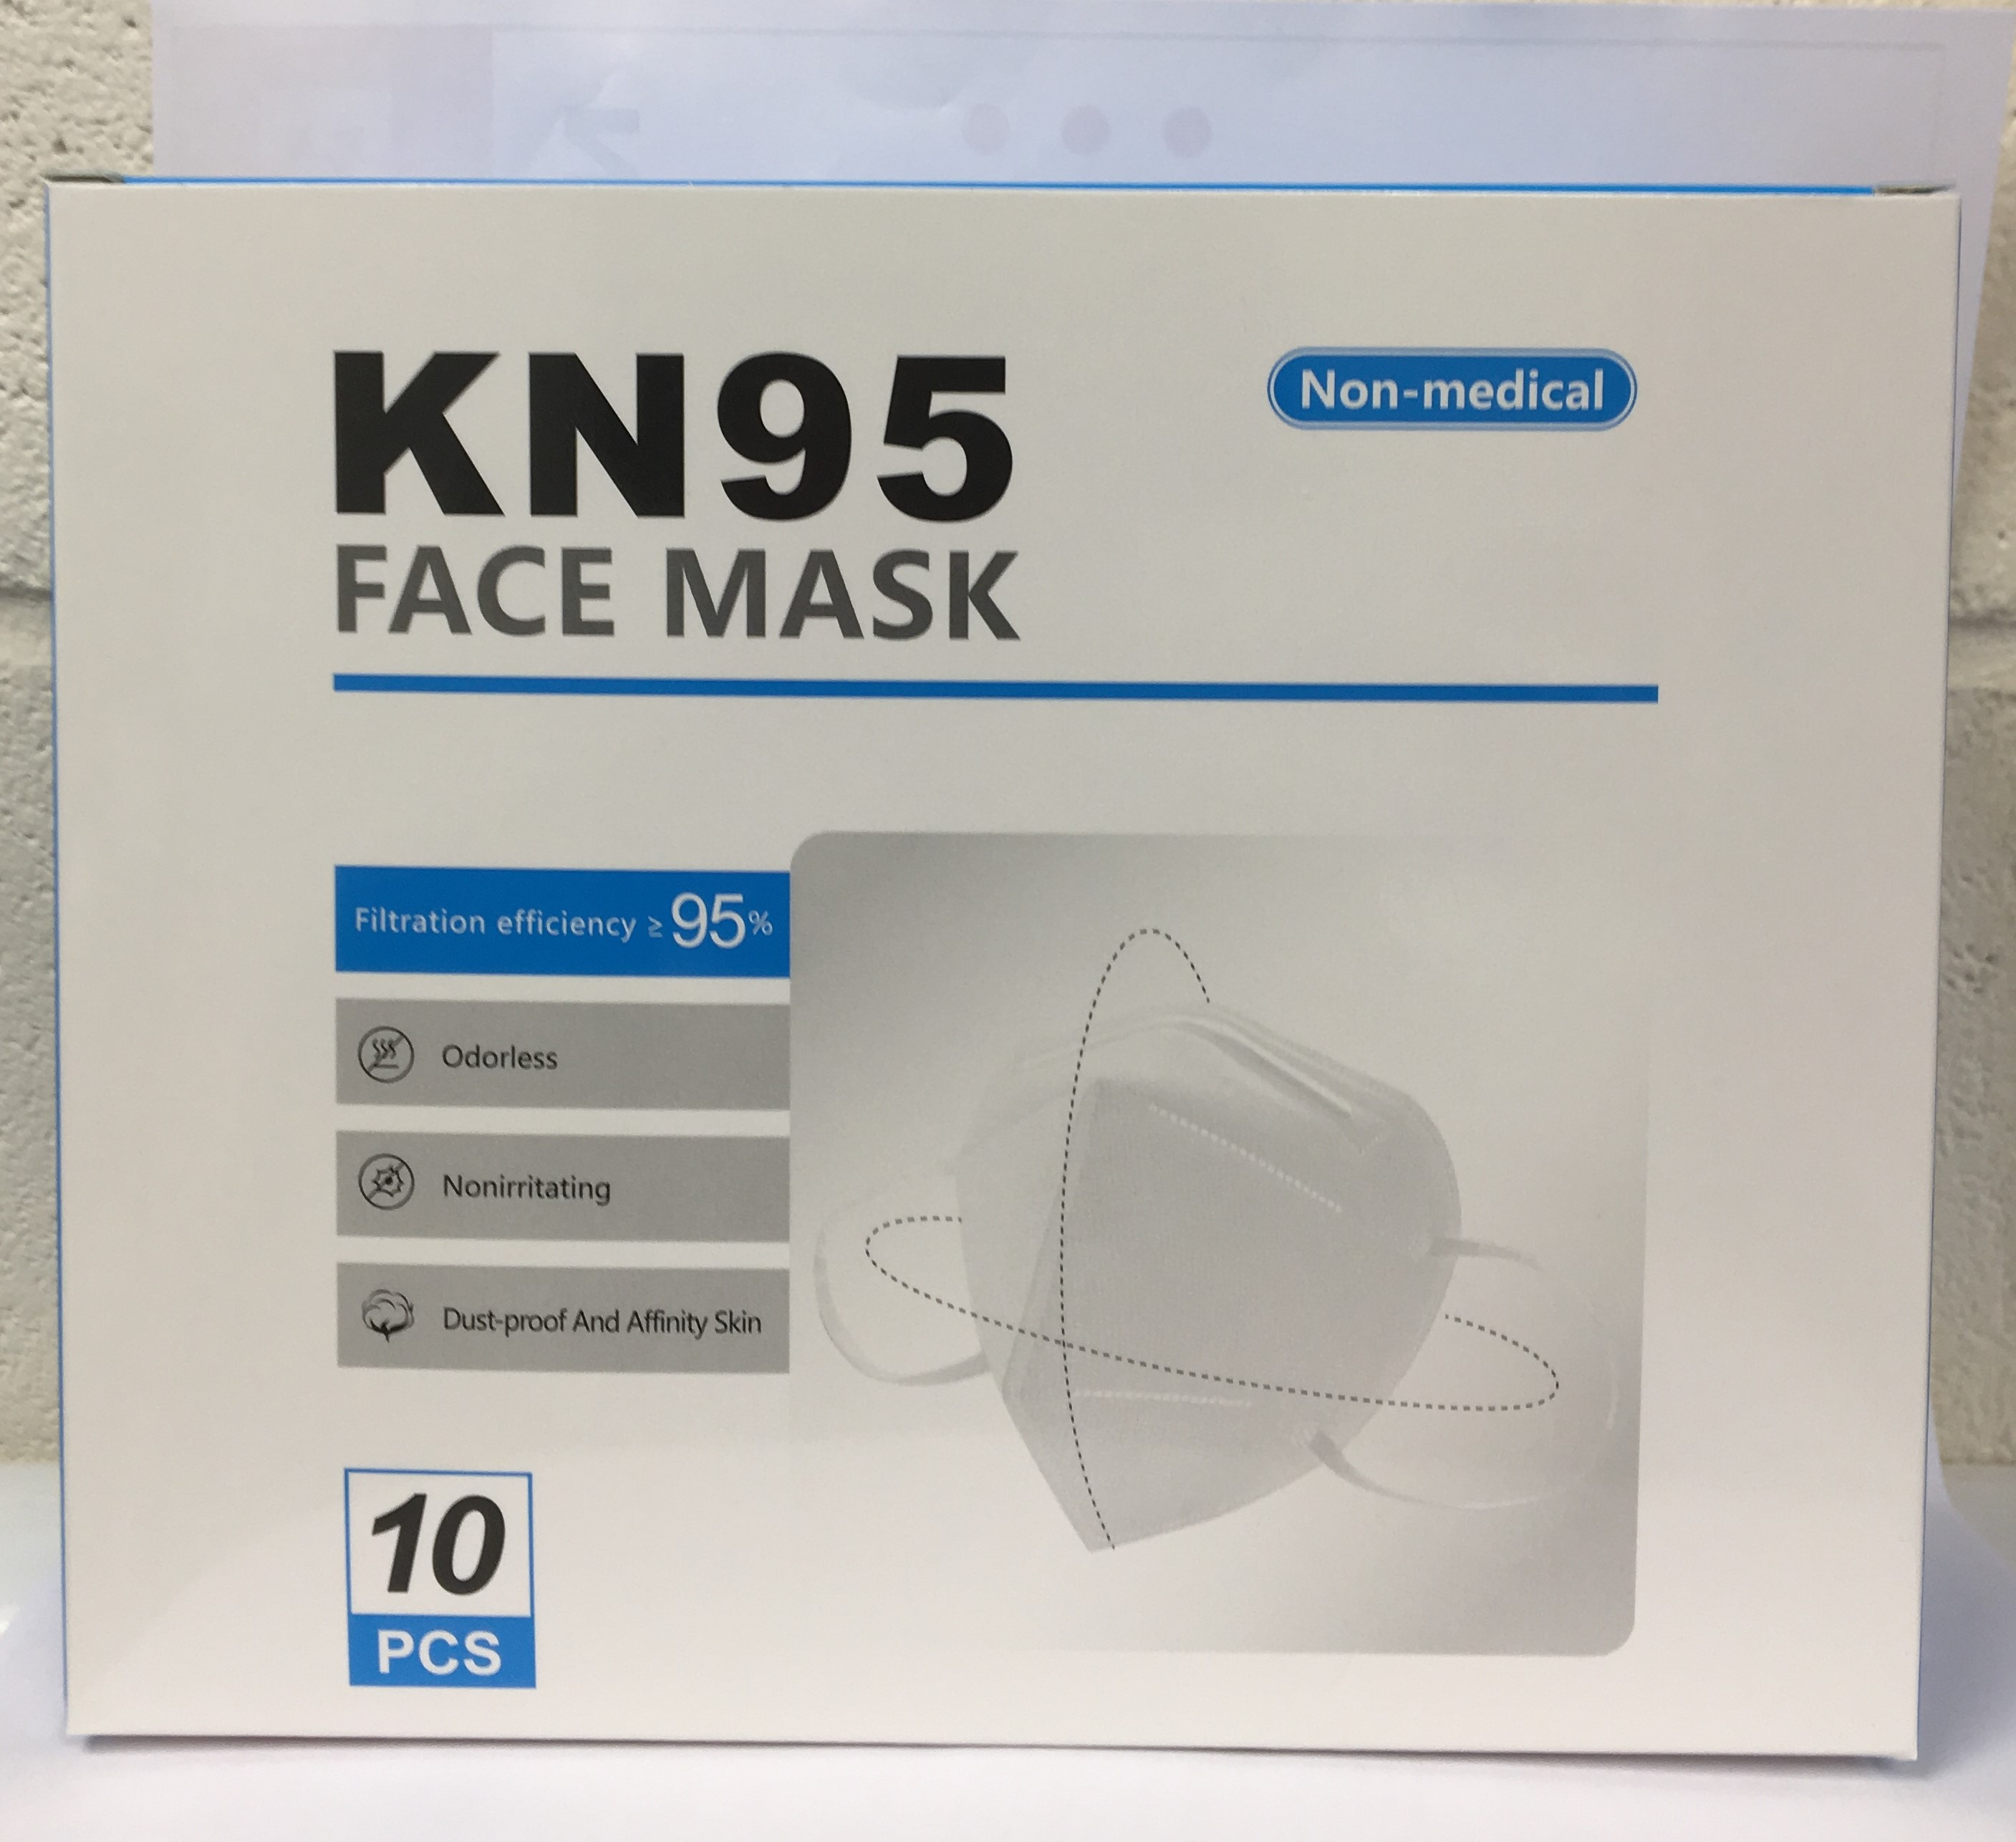 FFP2 (N95) Surgical Grade Face Mask packed in 10's, individually Shrink-wrapped